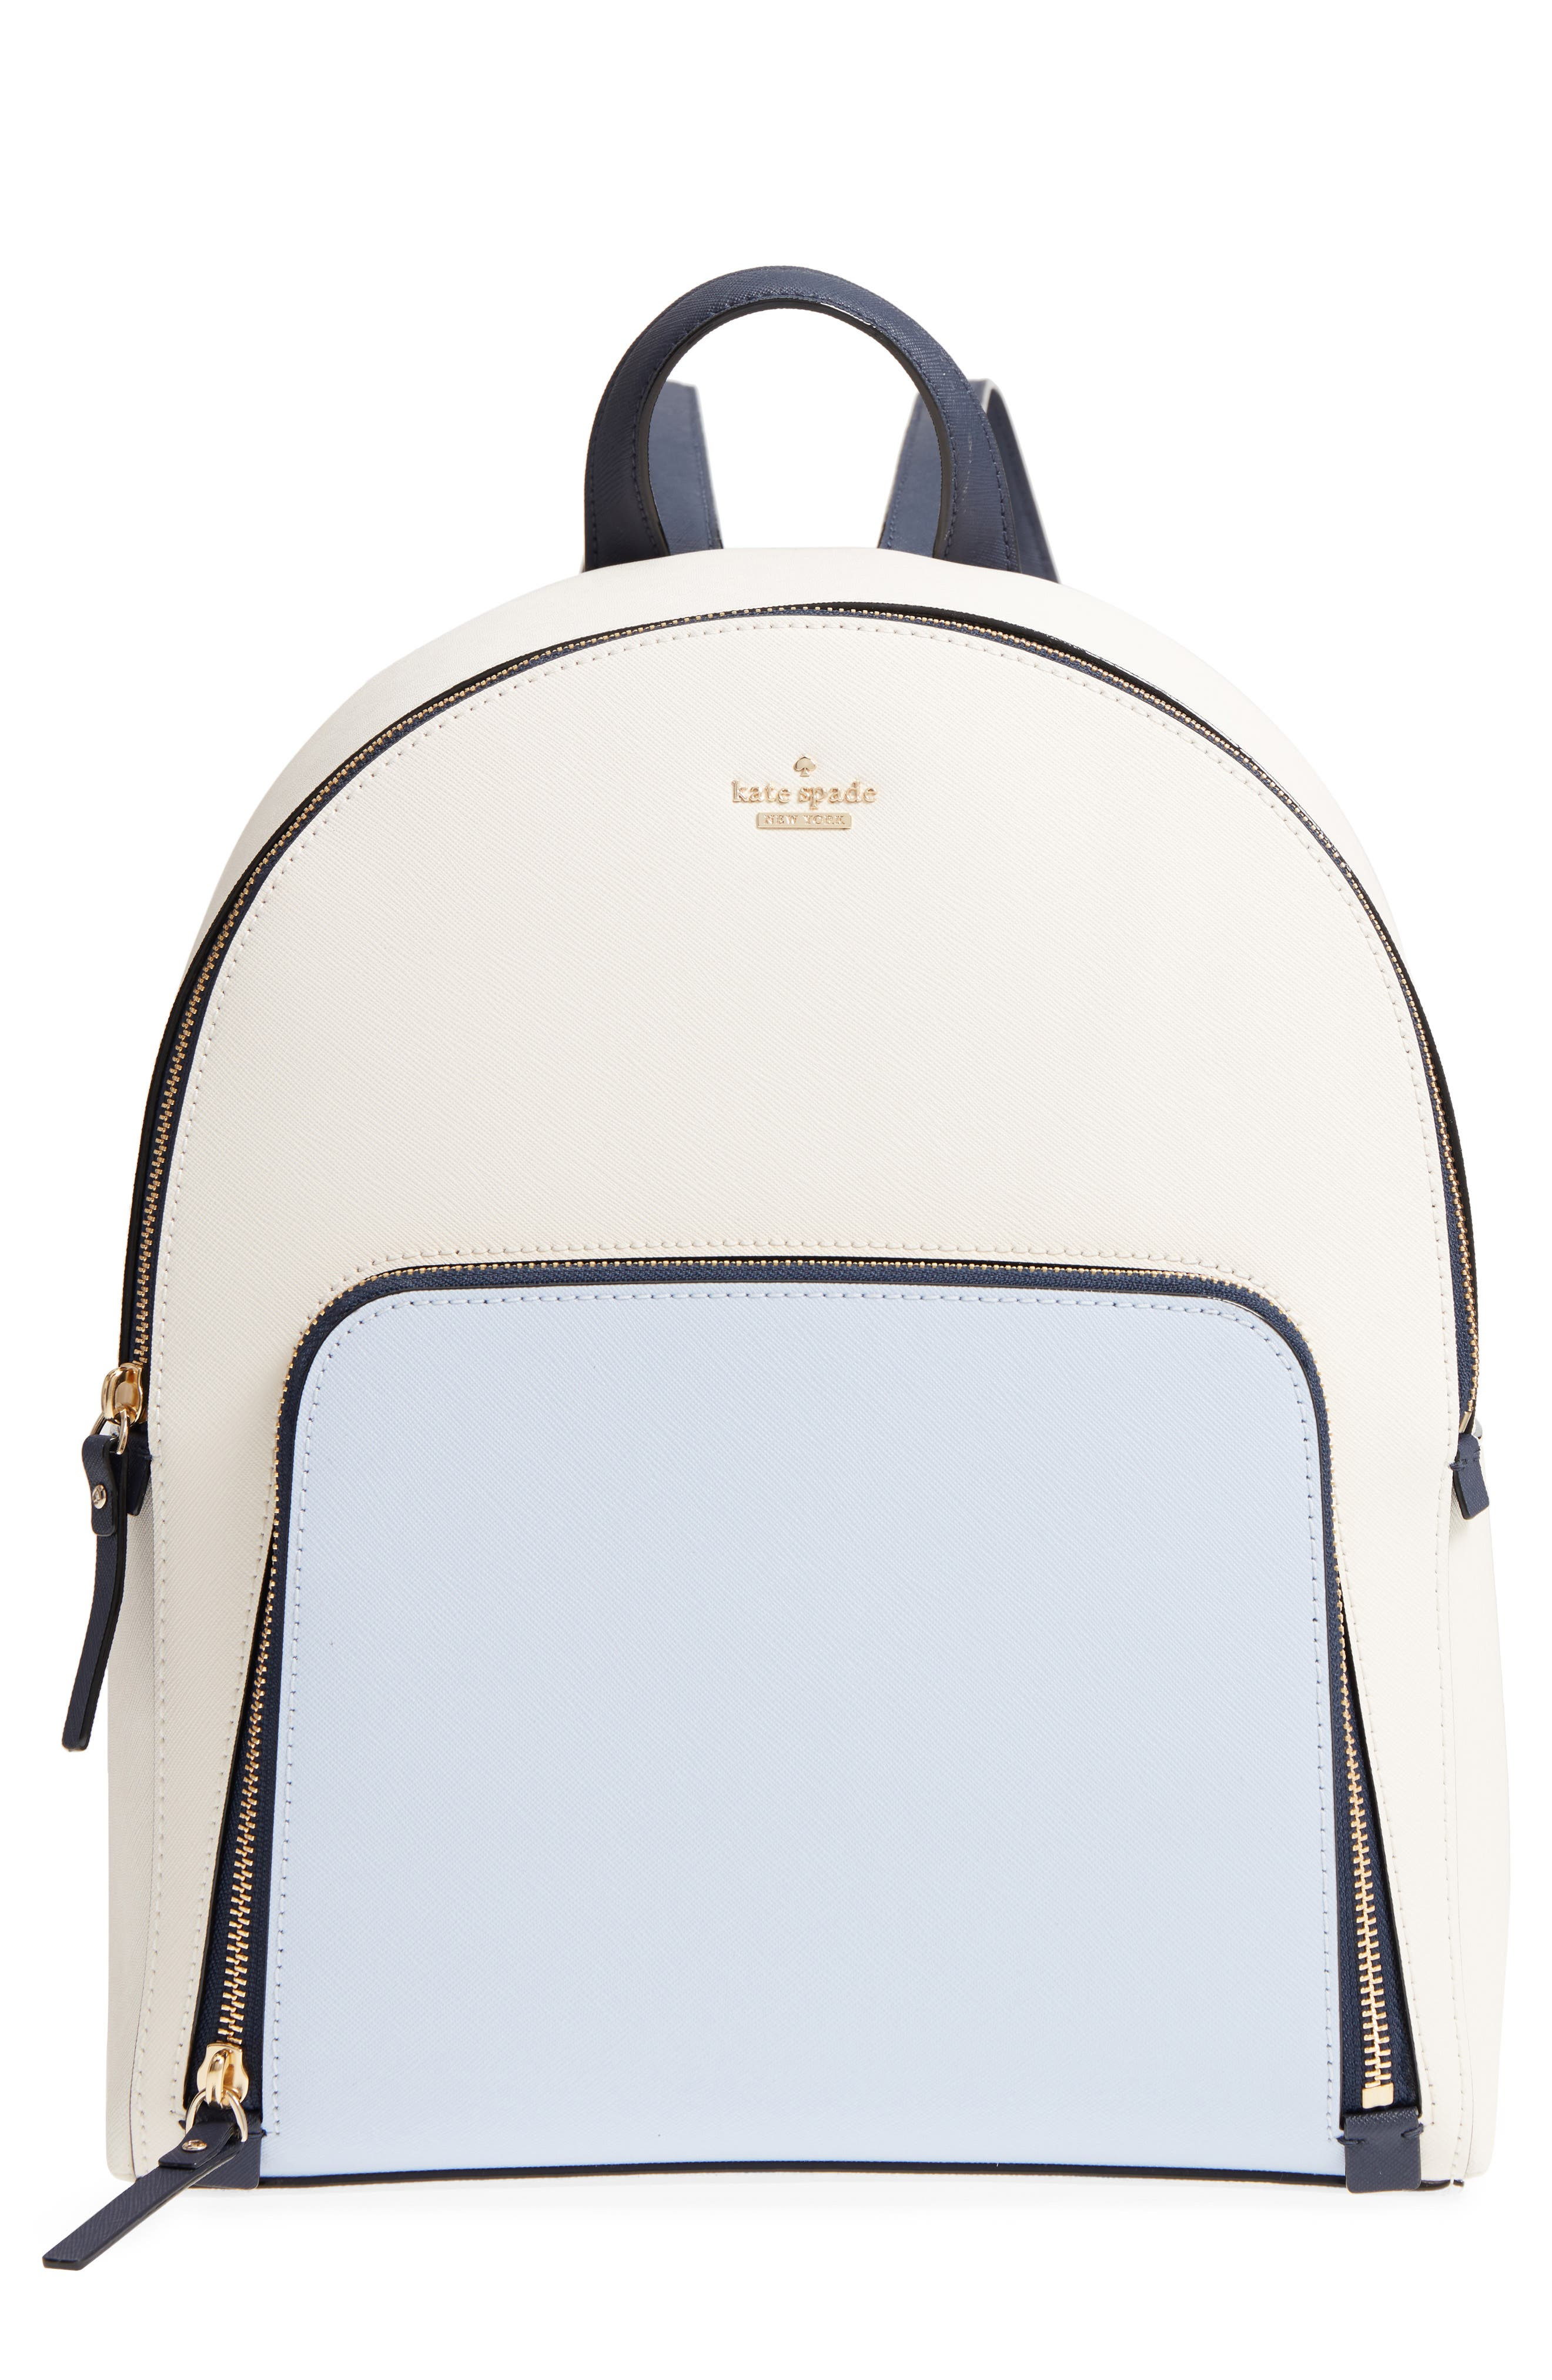 cameron street – hartley leather backpack,                         Main,                         color, Cement/ Morning Multi